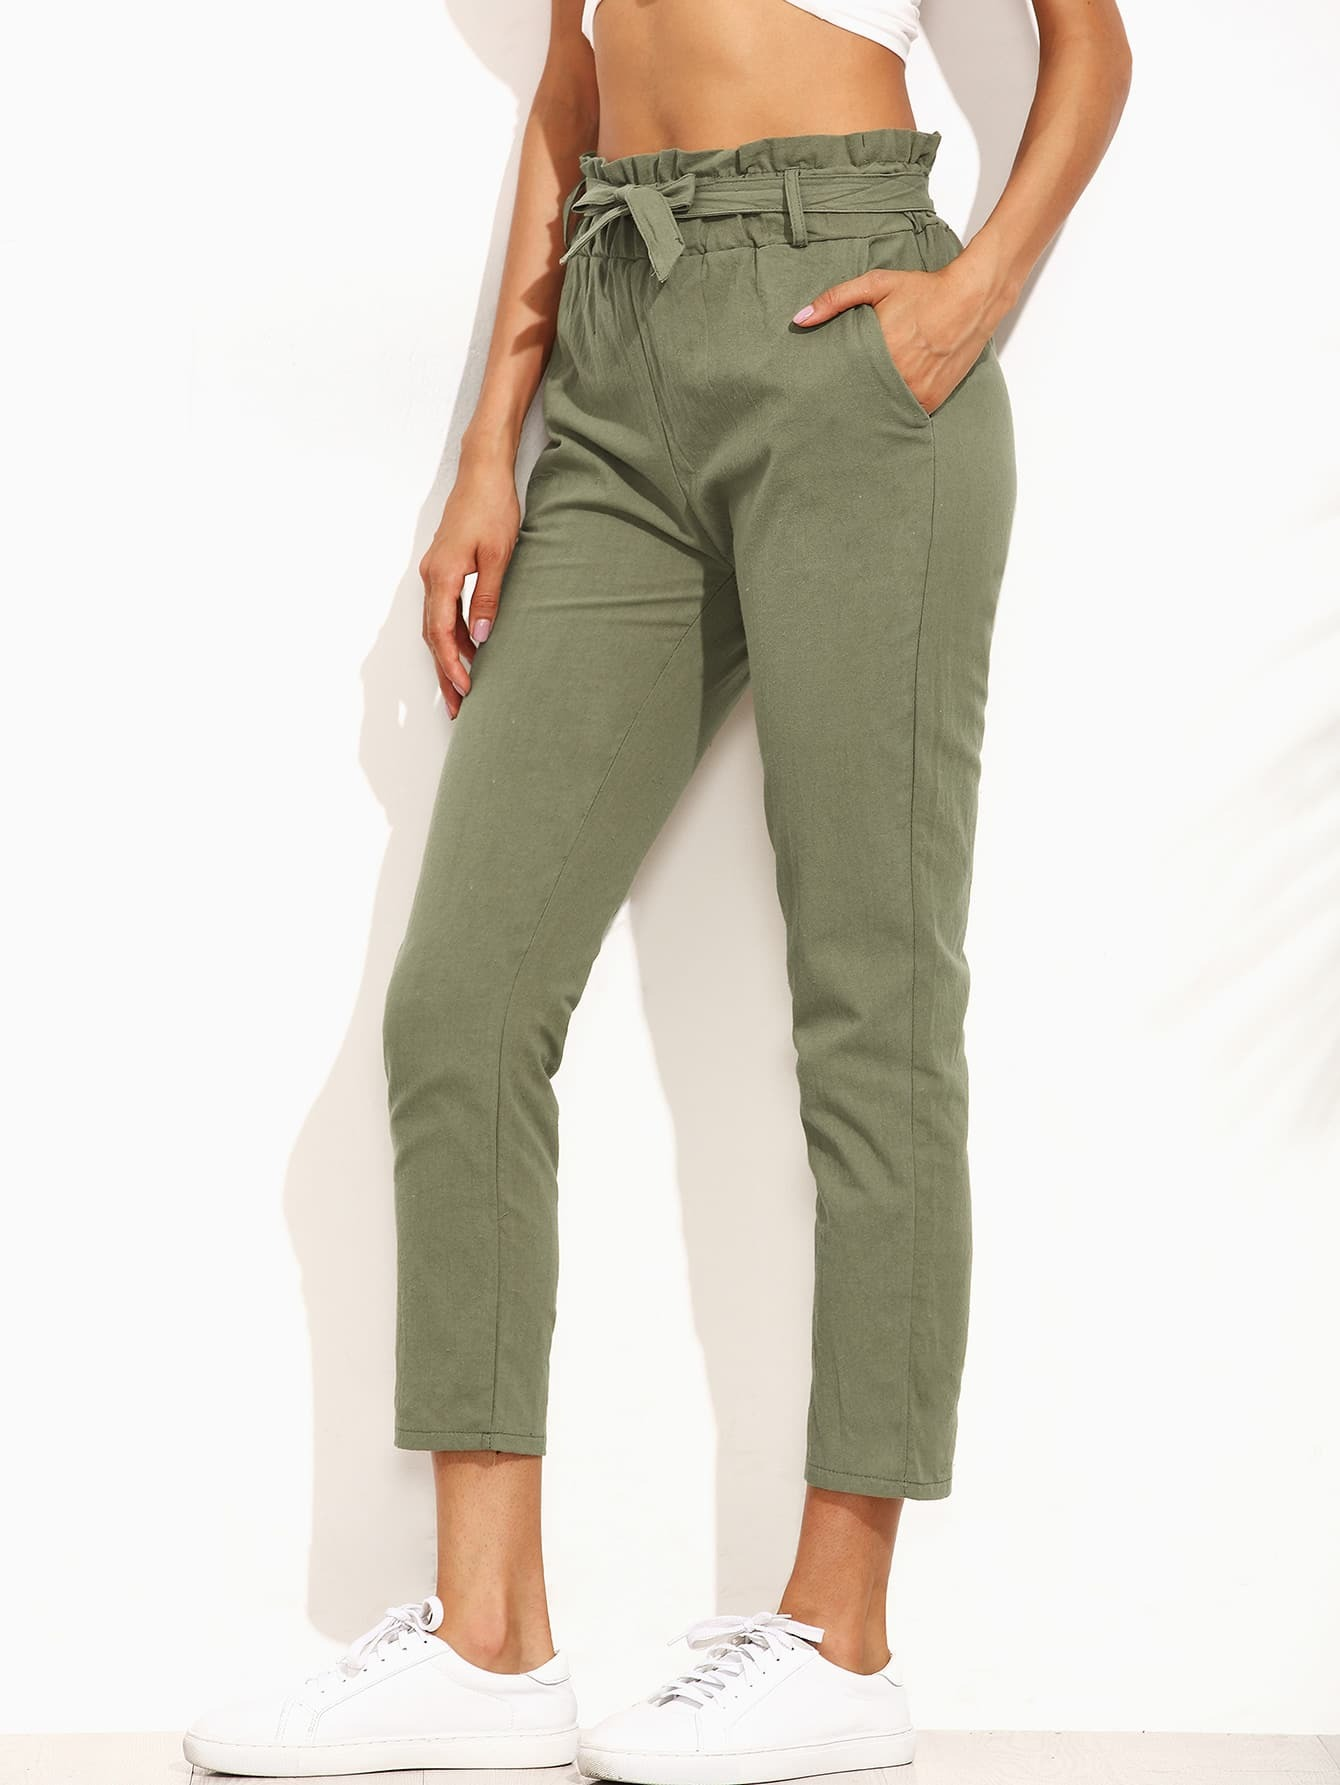 Army Green Ruffled Tie Waist pantsArmy Green Ruffled Tie Waist pants<br><br>color: Army Green<br>size: one-size